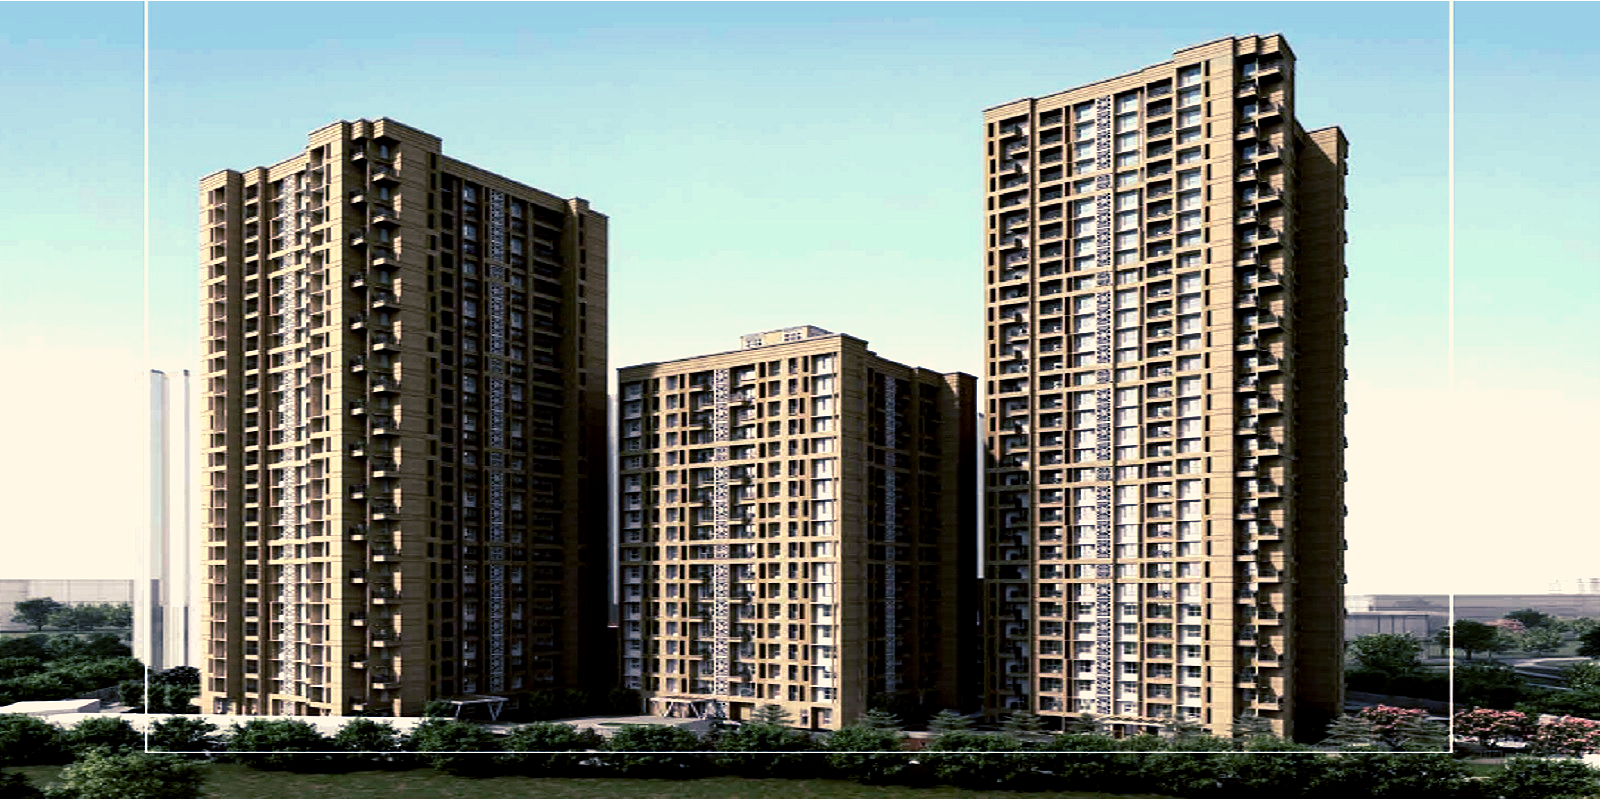 godrej park ridge project project large image1